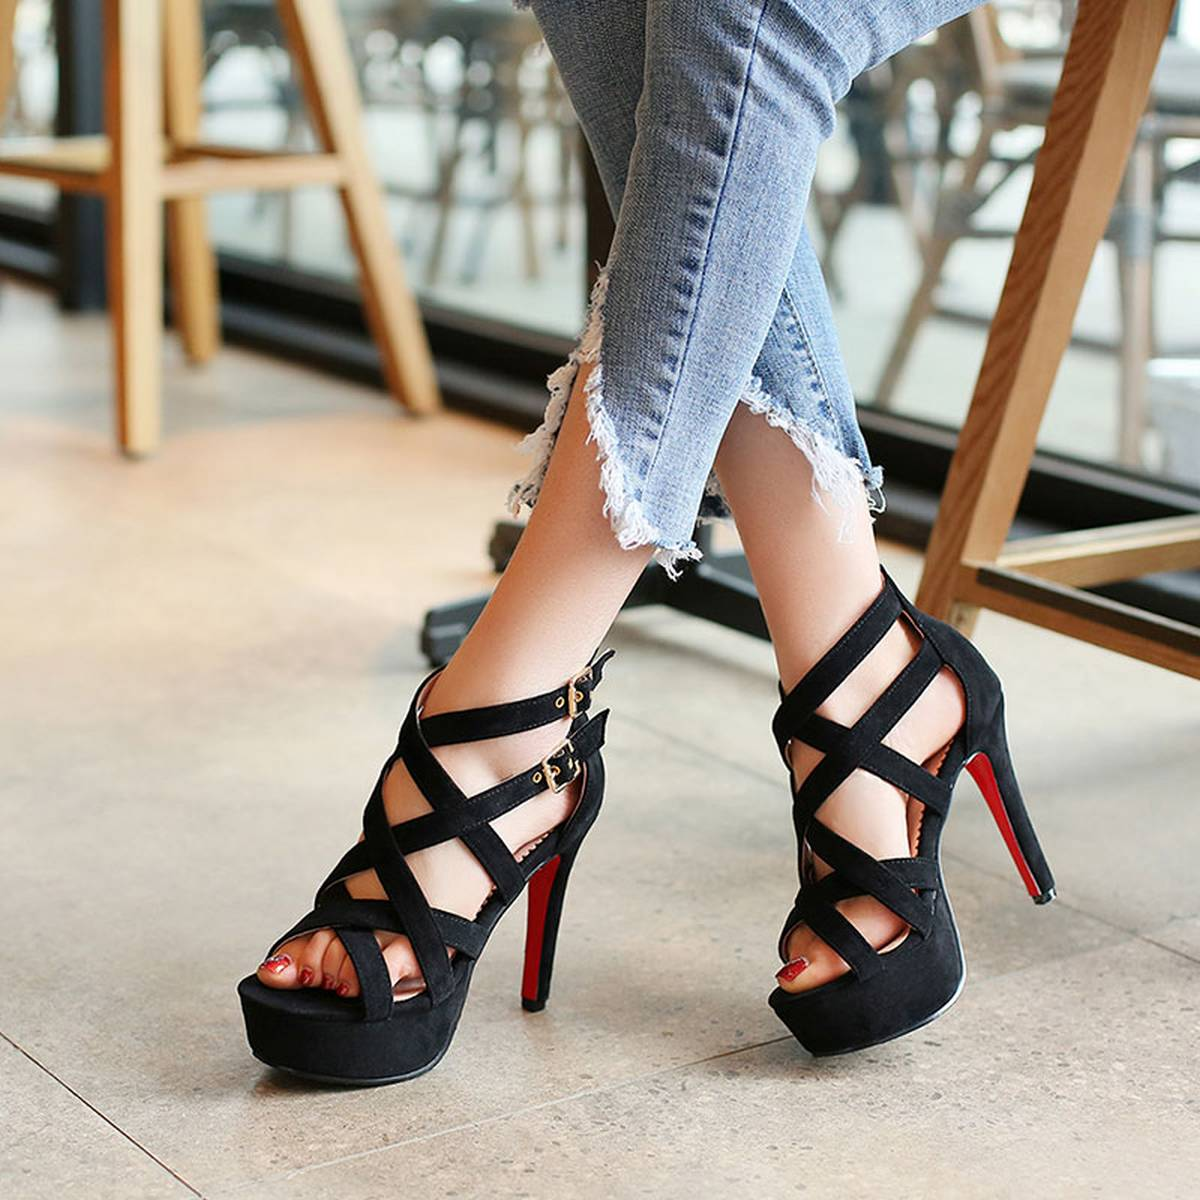 New style fashionable sandals, black cross buckle shoes, high heel sandals